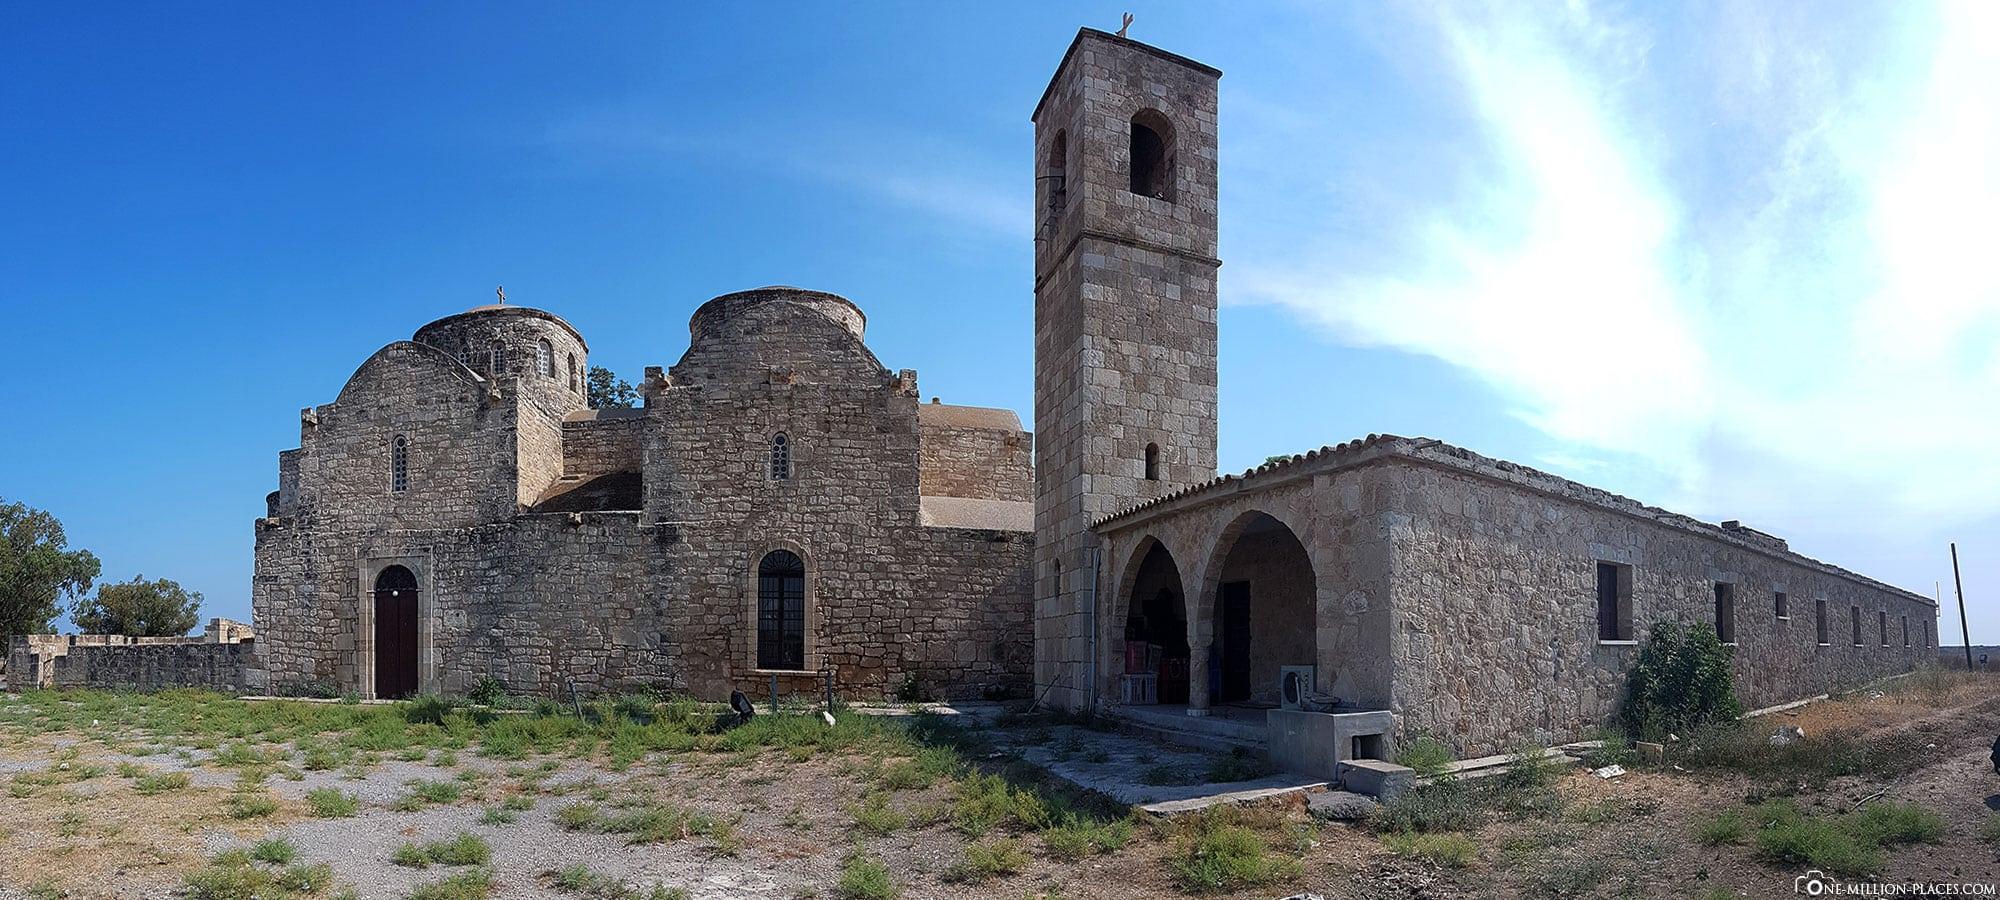 Panoramic view of St. Barnabas Monastery, Cyprus, East Coast, Sights, On Your Own, Travelreport